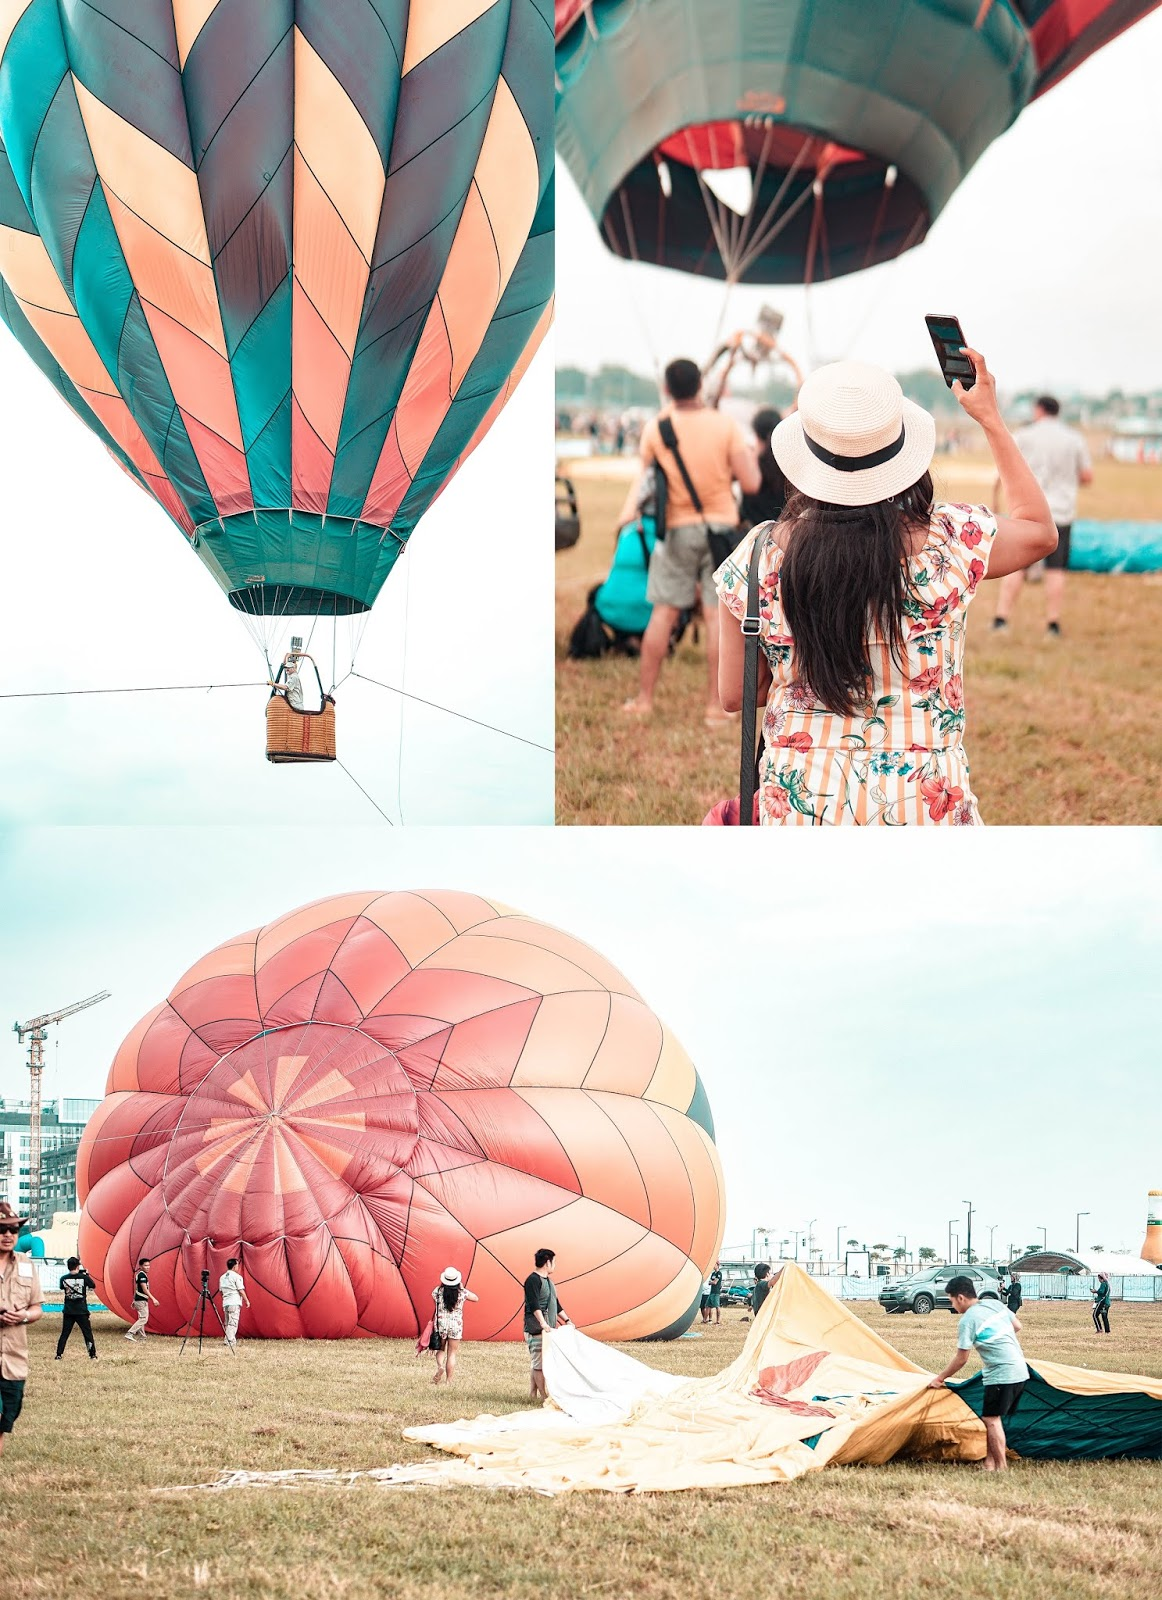 hot air balloon in Clark, Pampanga, Hot Air Balloon Festival 2019